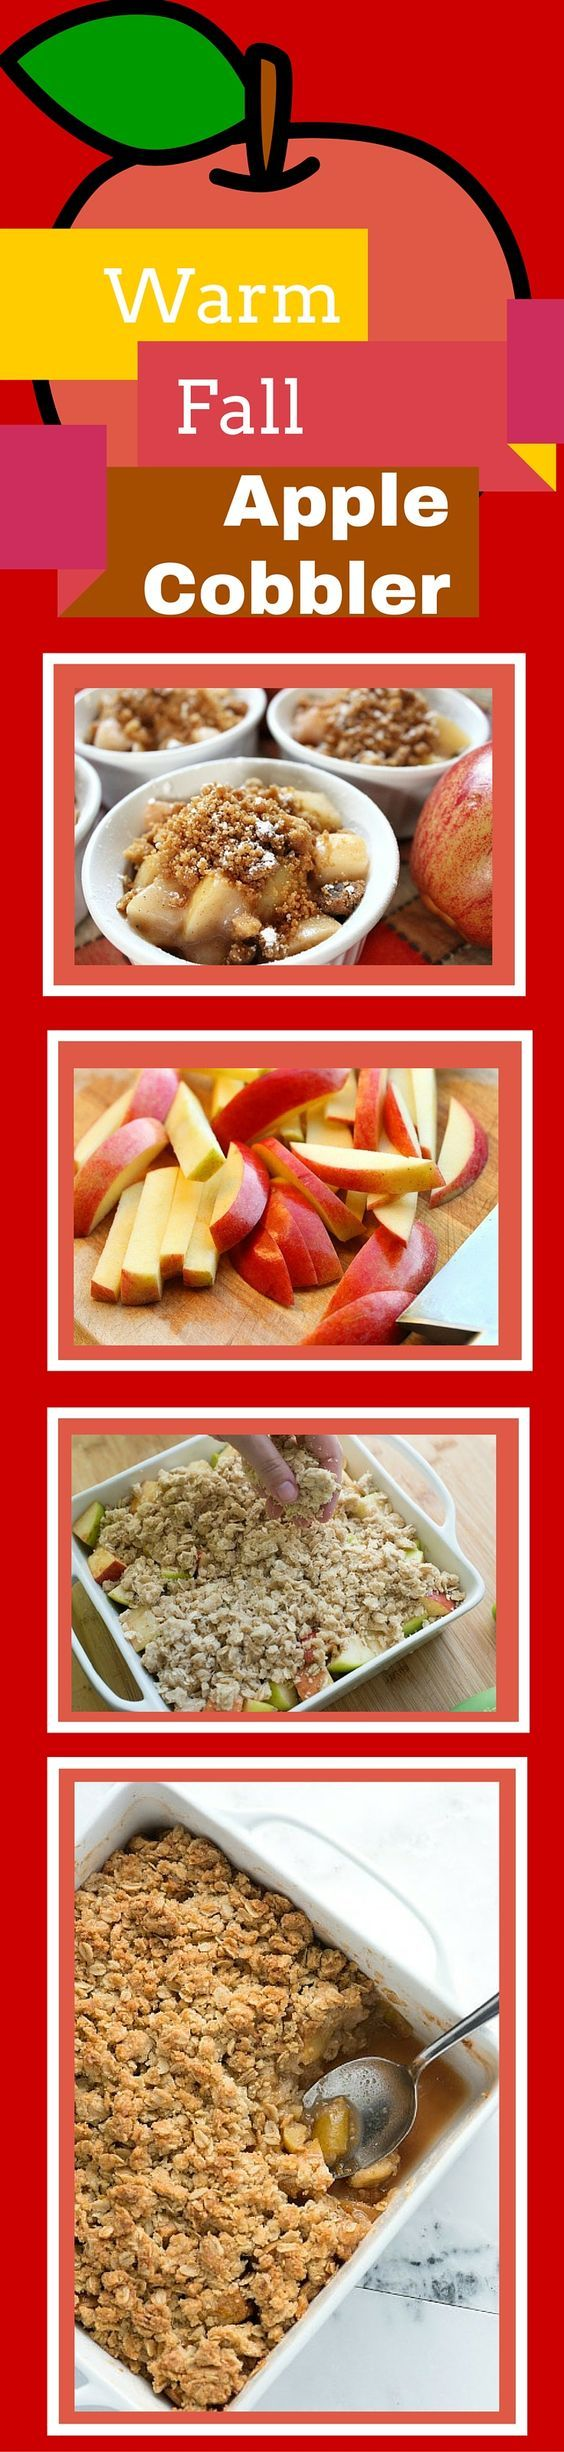 This clean Apple Cobbler dessert recipe will come in handy for apple picking season this Fall! All the yummy gooey goodness but no white sugar, gluten free and oh so good! Oh and your house will smell DELICIOUS too!